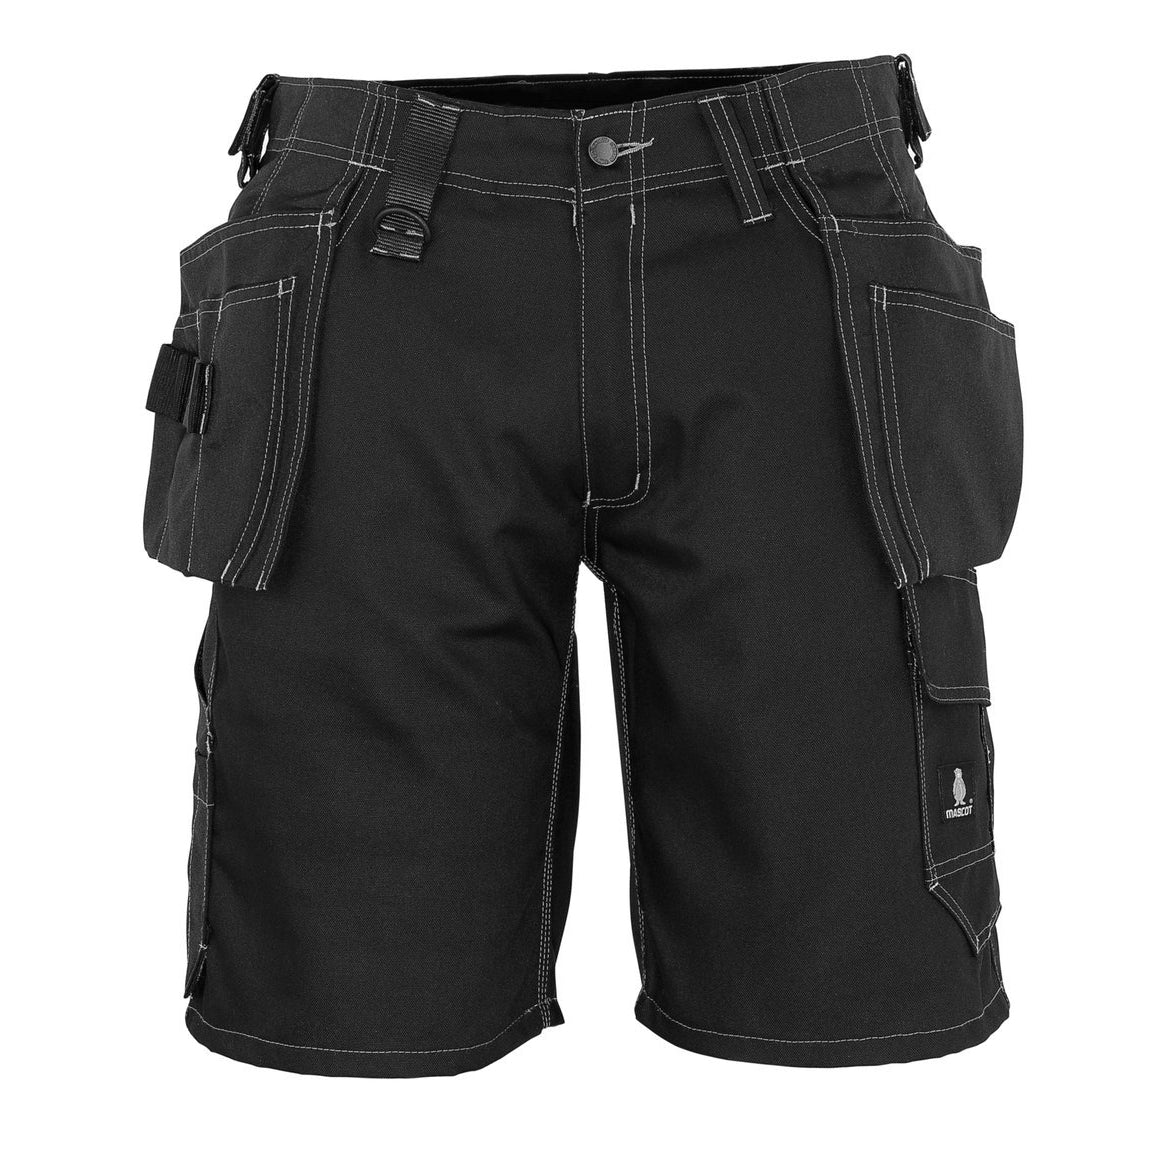 MASCOT Zafra-HARDWEAR-Shorts with holster pockets